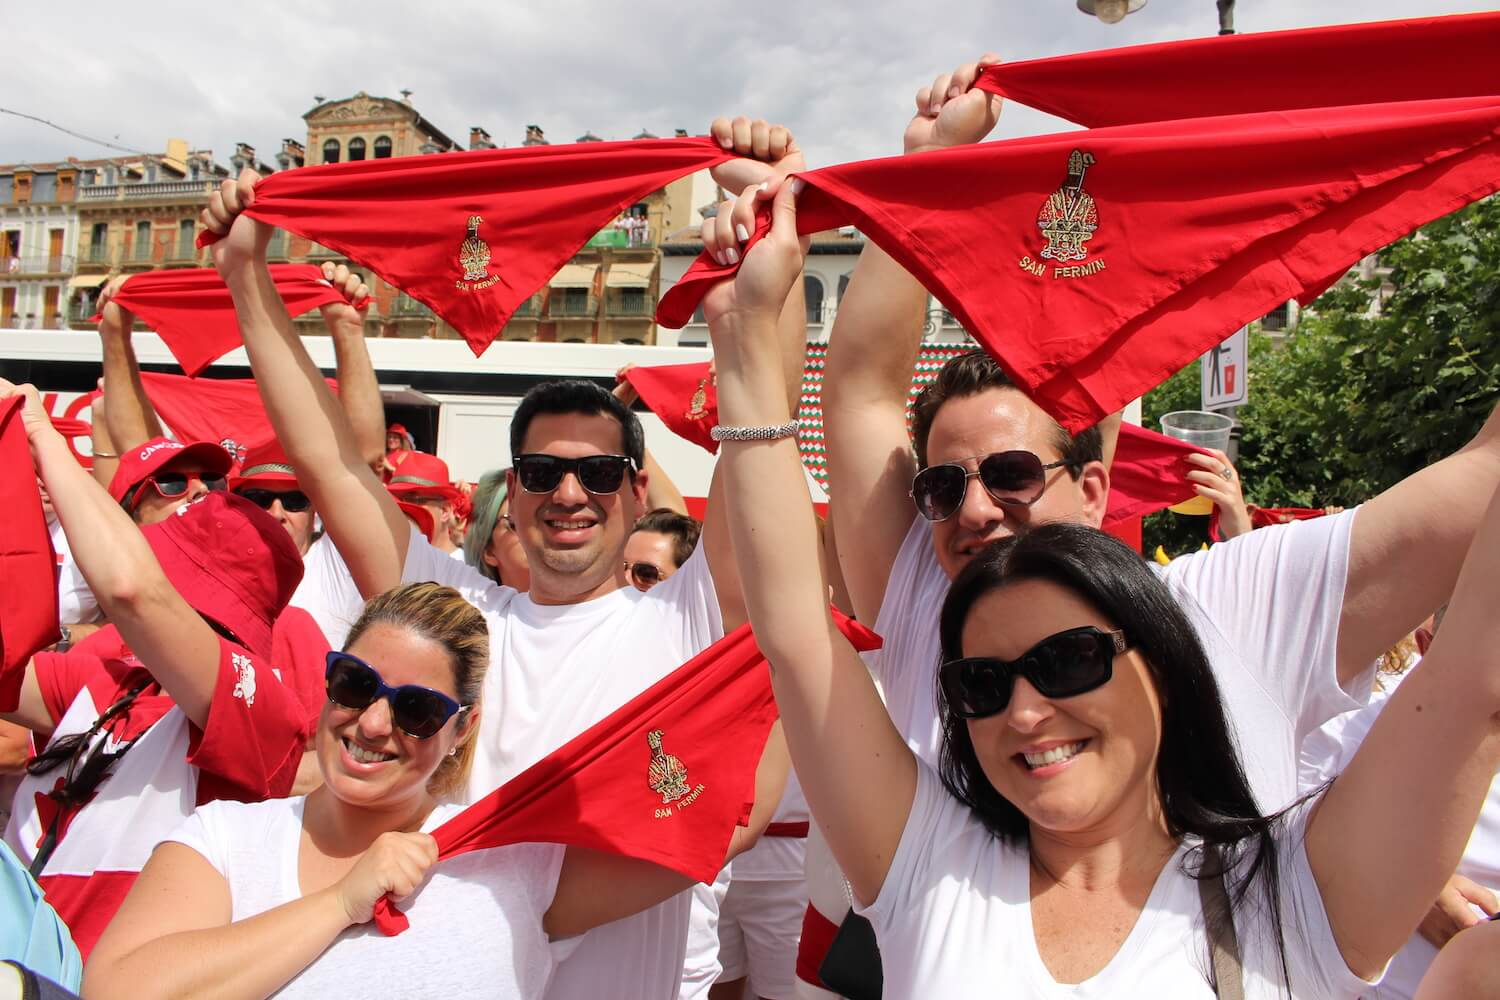 people celebrating running of the bulls with red neckerchiefs